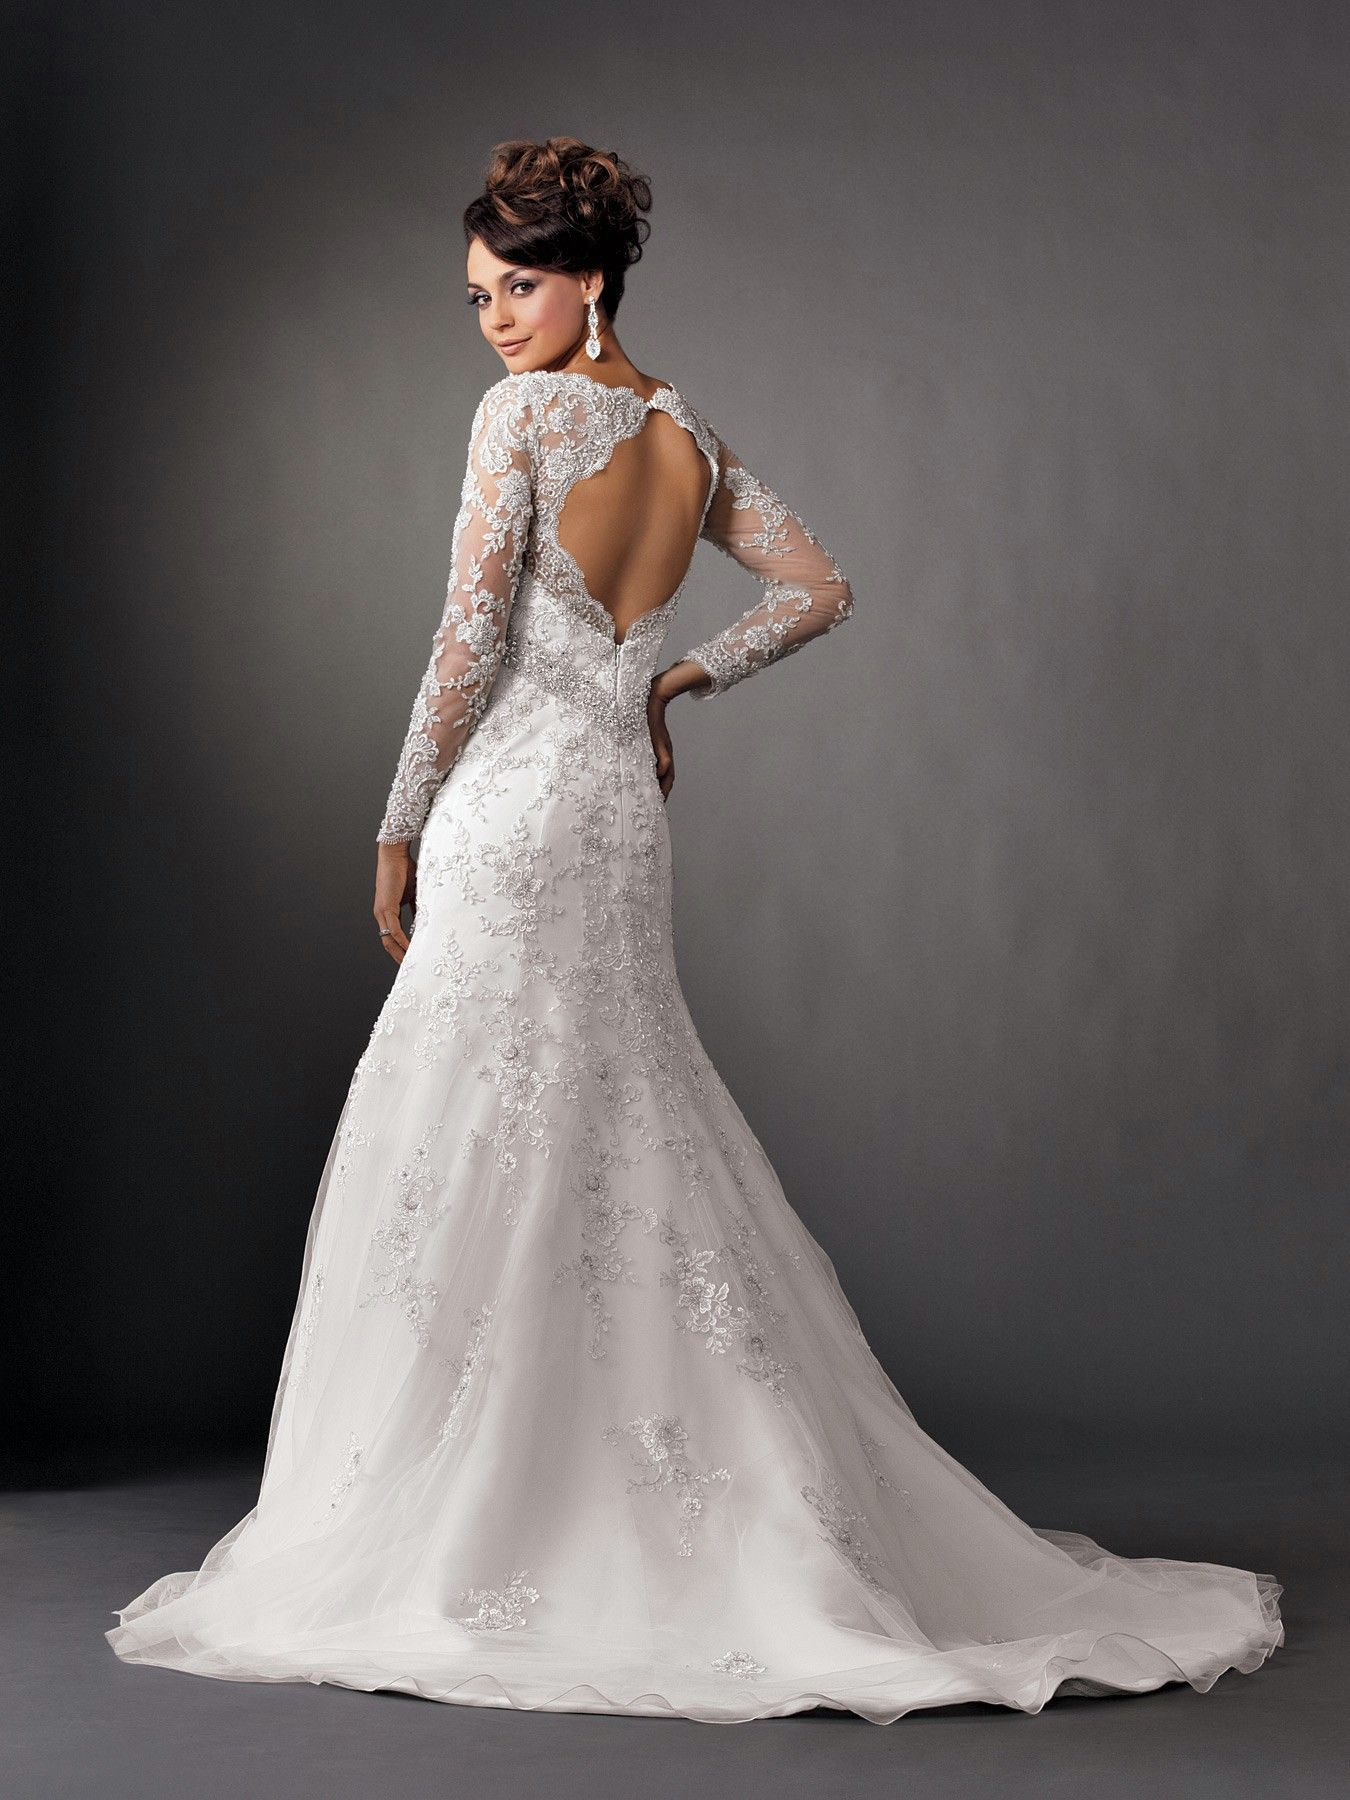 35 Wedding Gowns With Sleeves | Floral lace, Mermaid and Gowns